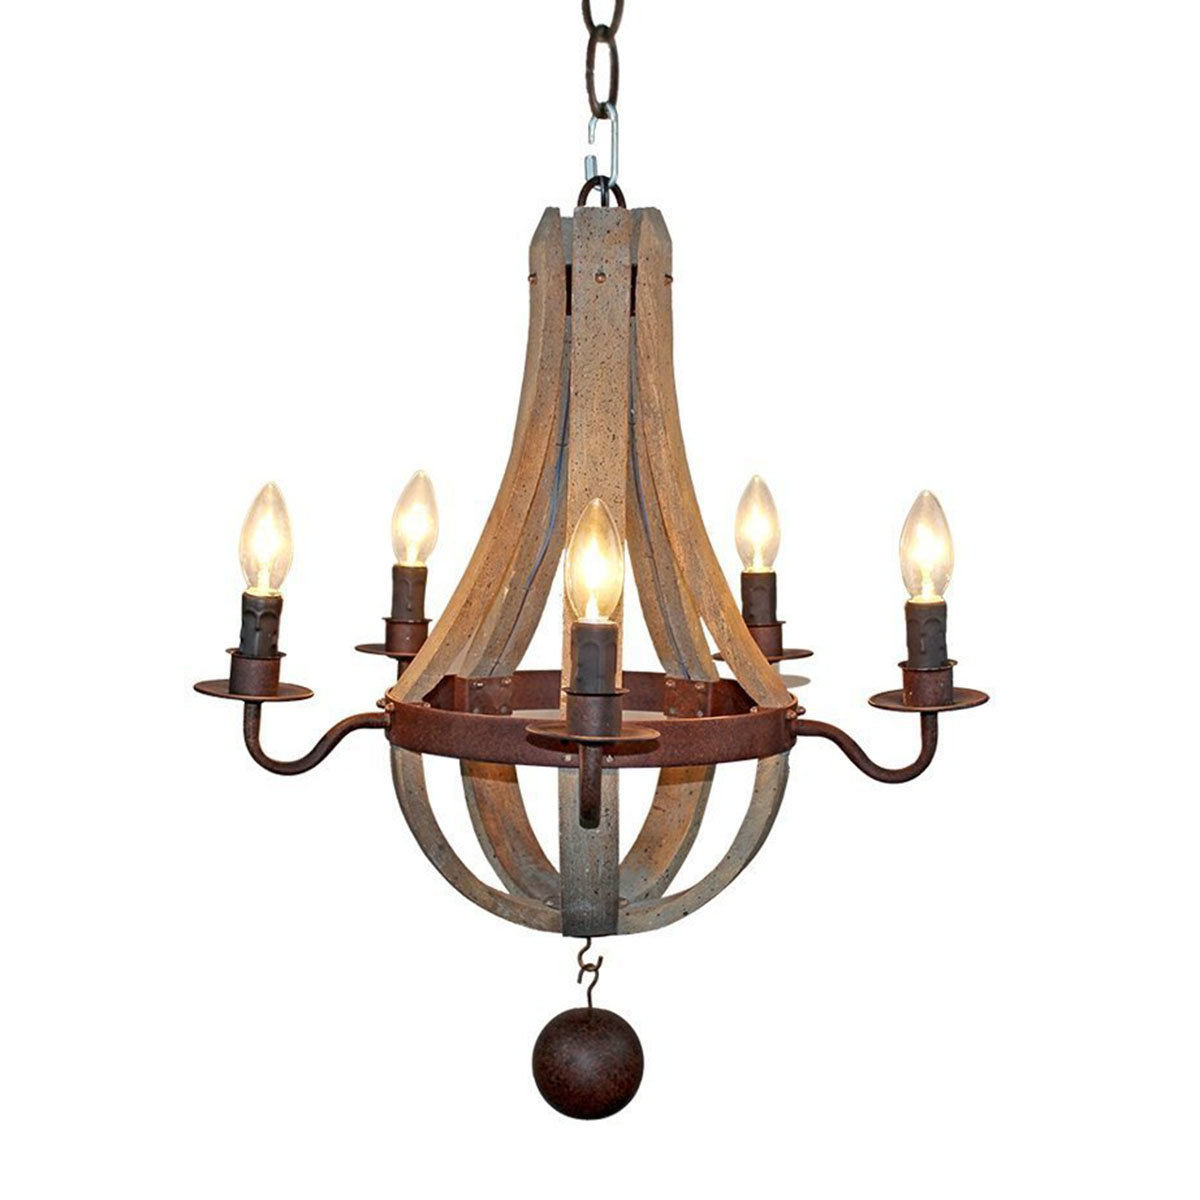 2020 Amata Flask Shape 5-Light Empire Chandelier with Kenna 5-Light Empire Chandeliers